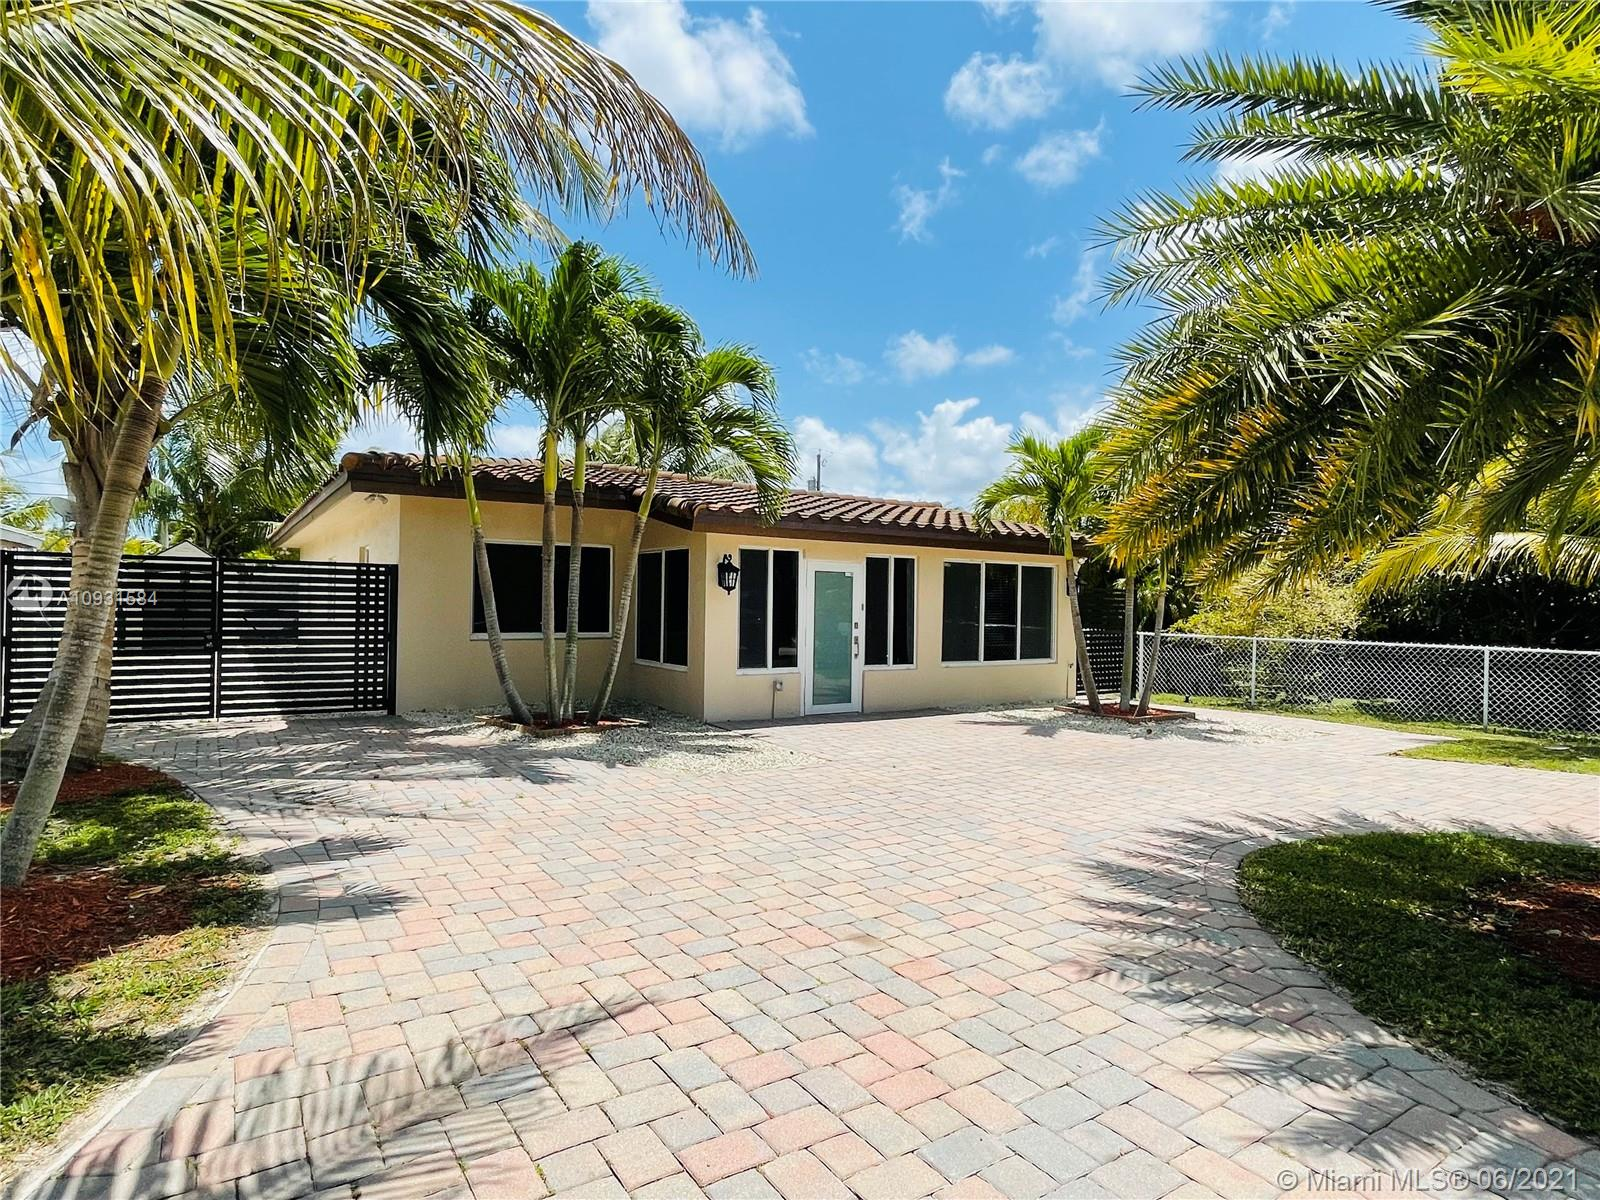 North Miami Beach - 1340 NE 177th St, North Miami Beach, FL 33162